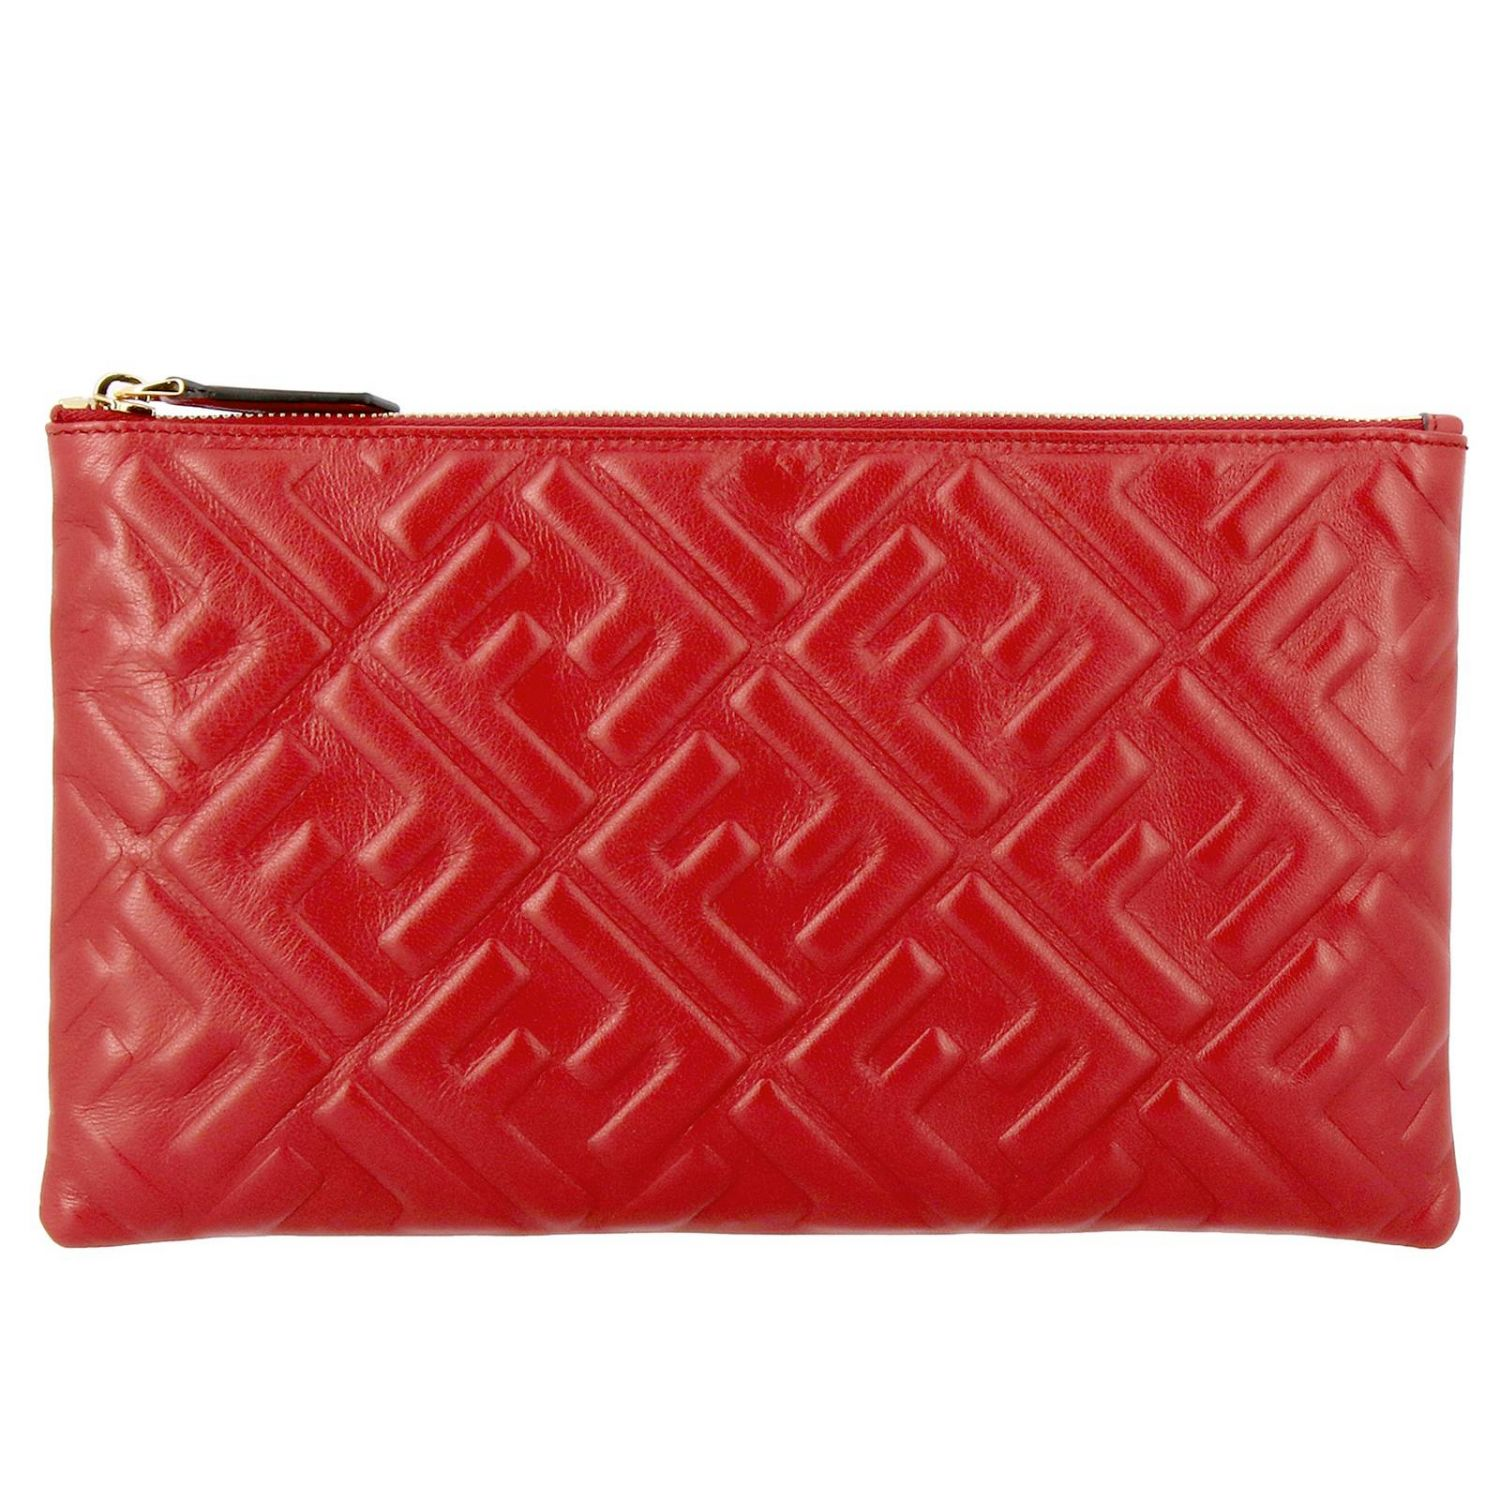 Fendi Large leather clutch bag with maxi FF monogram by Fendi embossed red 1